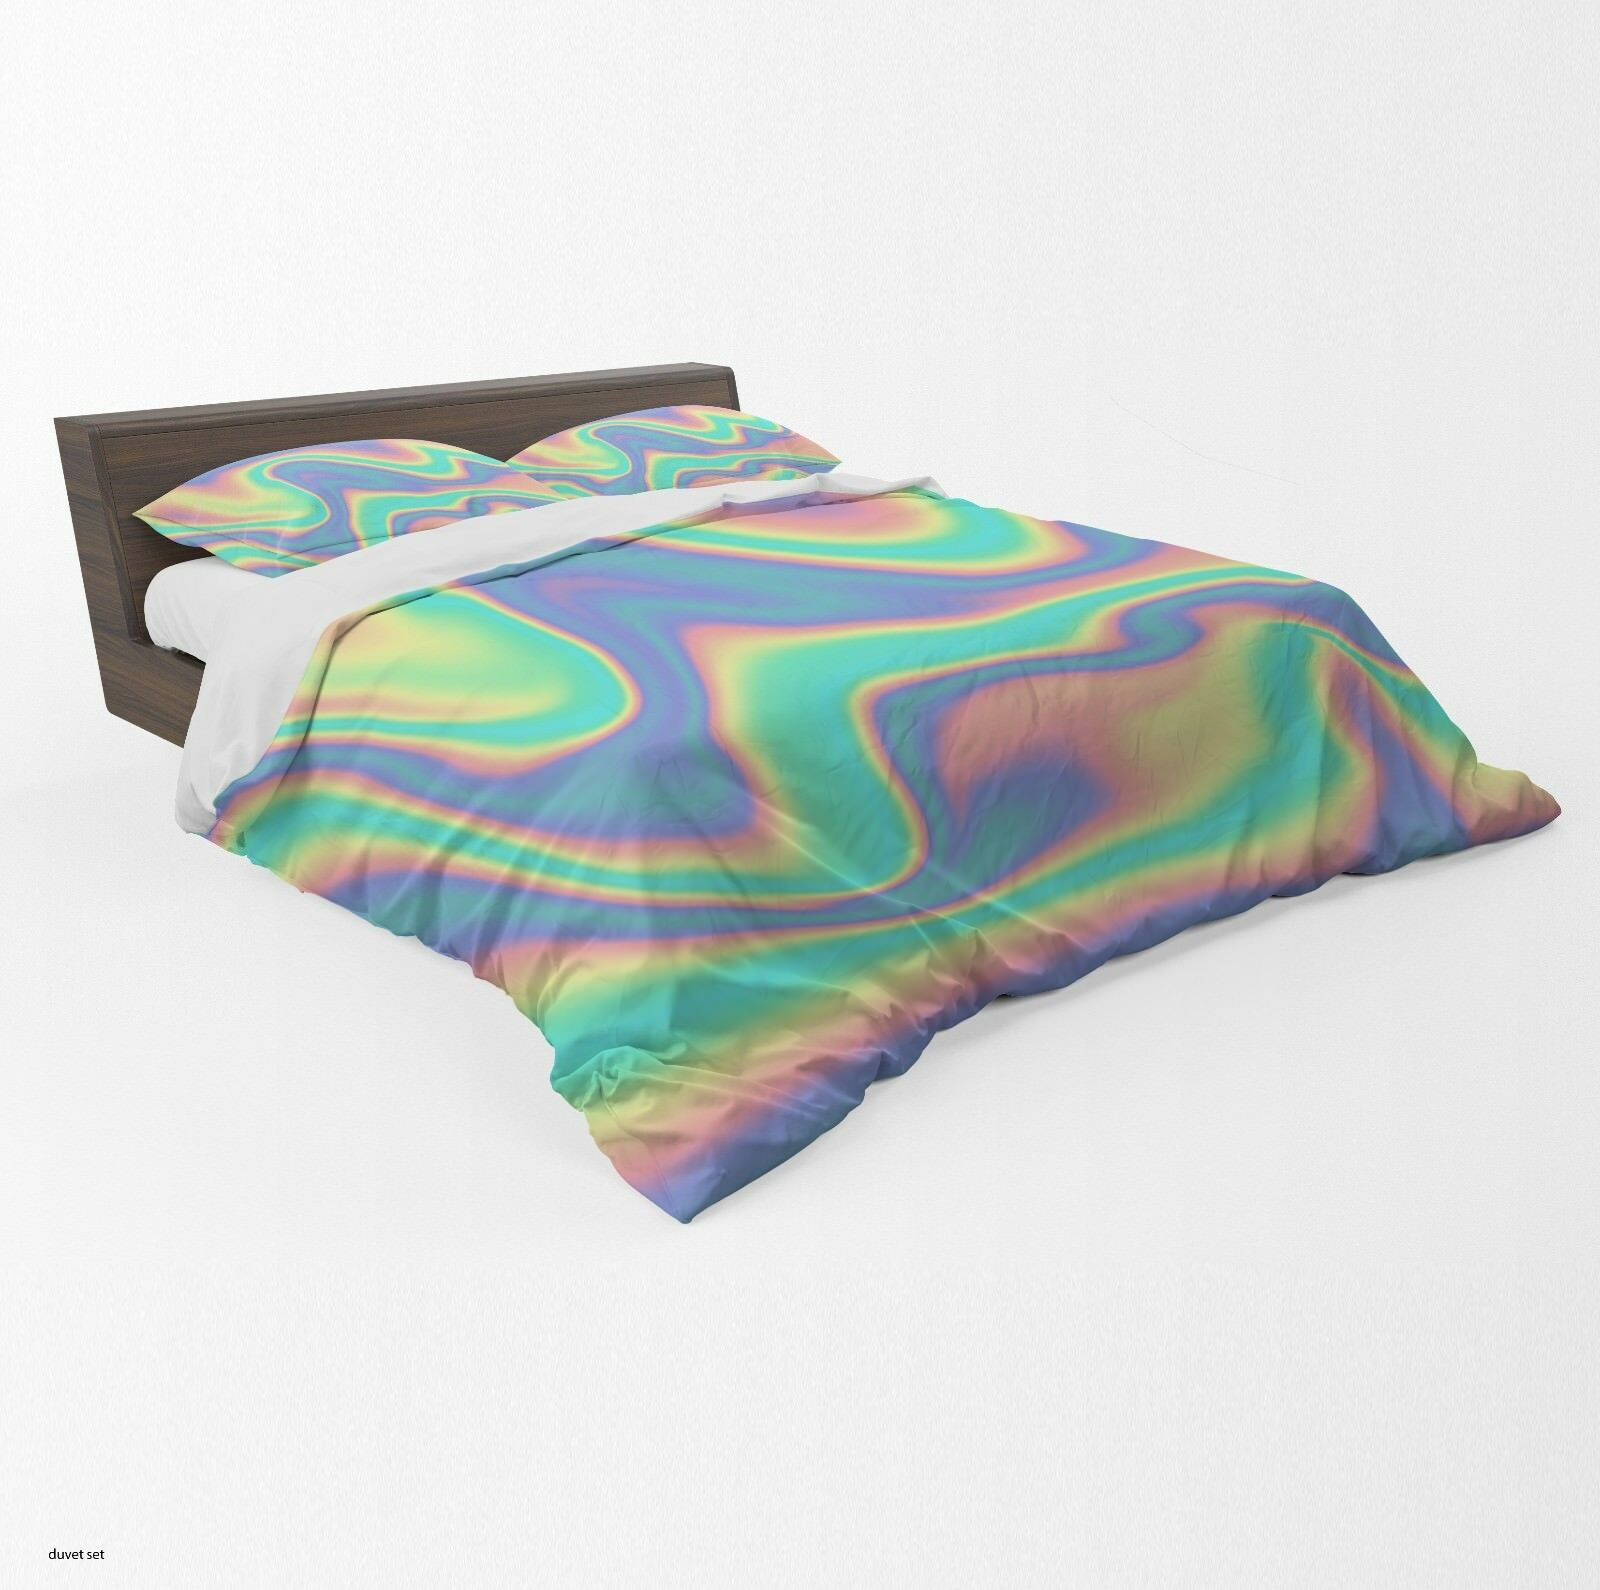 3d Digital Printing different designs Duvet Covers, Blankets Blankets Covers, & Cushion Covers 33e042